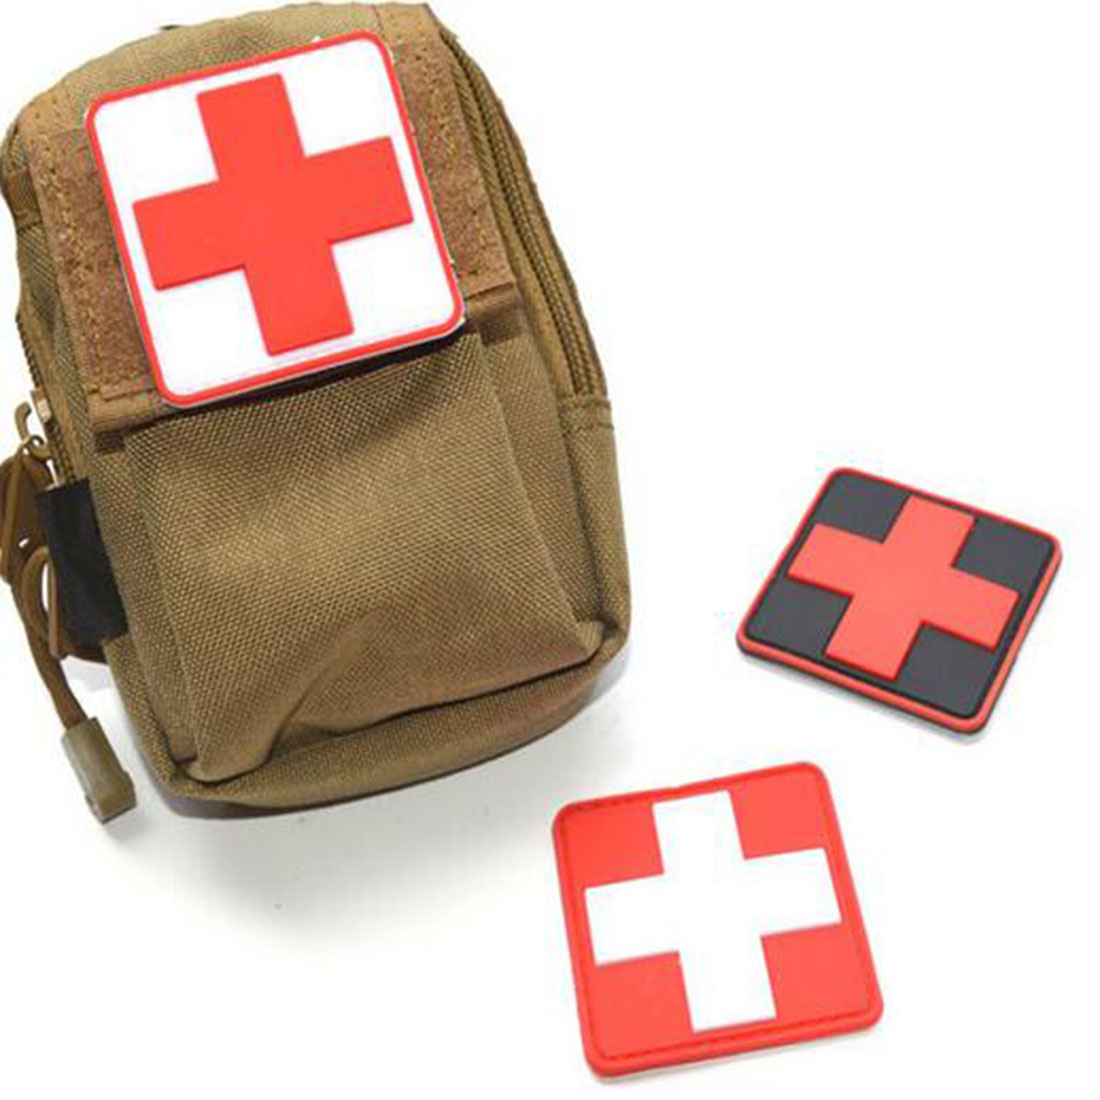 Home Lovely Outdoor Products Pvc Patch Armband The Medical Rescue Of The Red Cross Chapter Morale Military Patches Badges